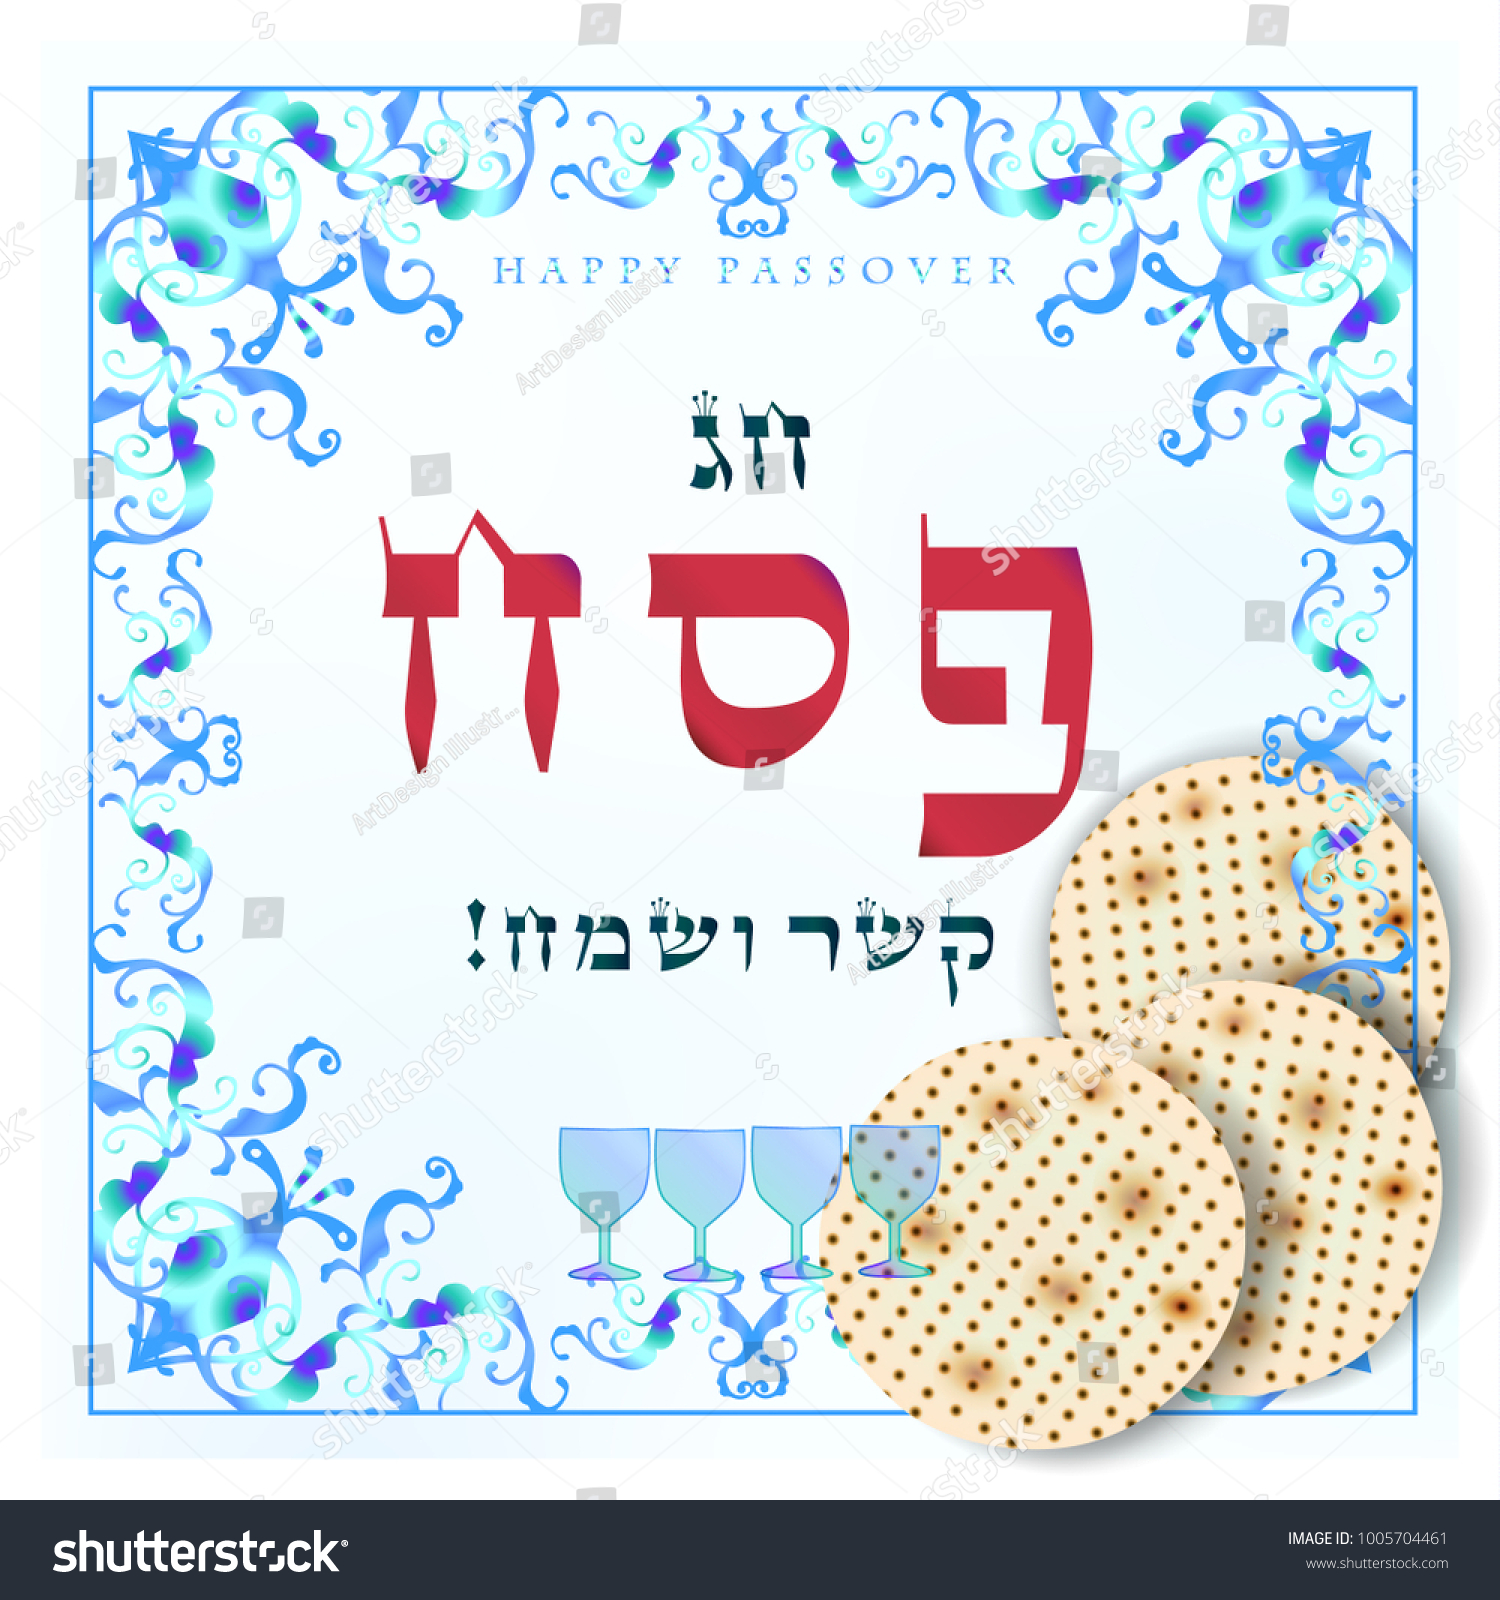 Happy Passover Holiday Hebrew Lettering Greeting Stock Vector